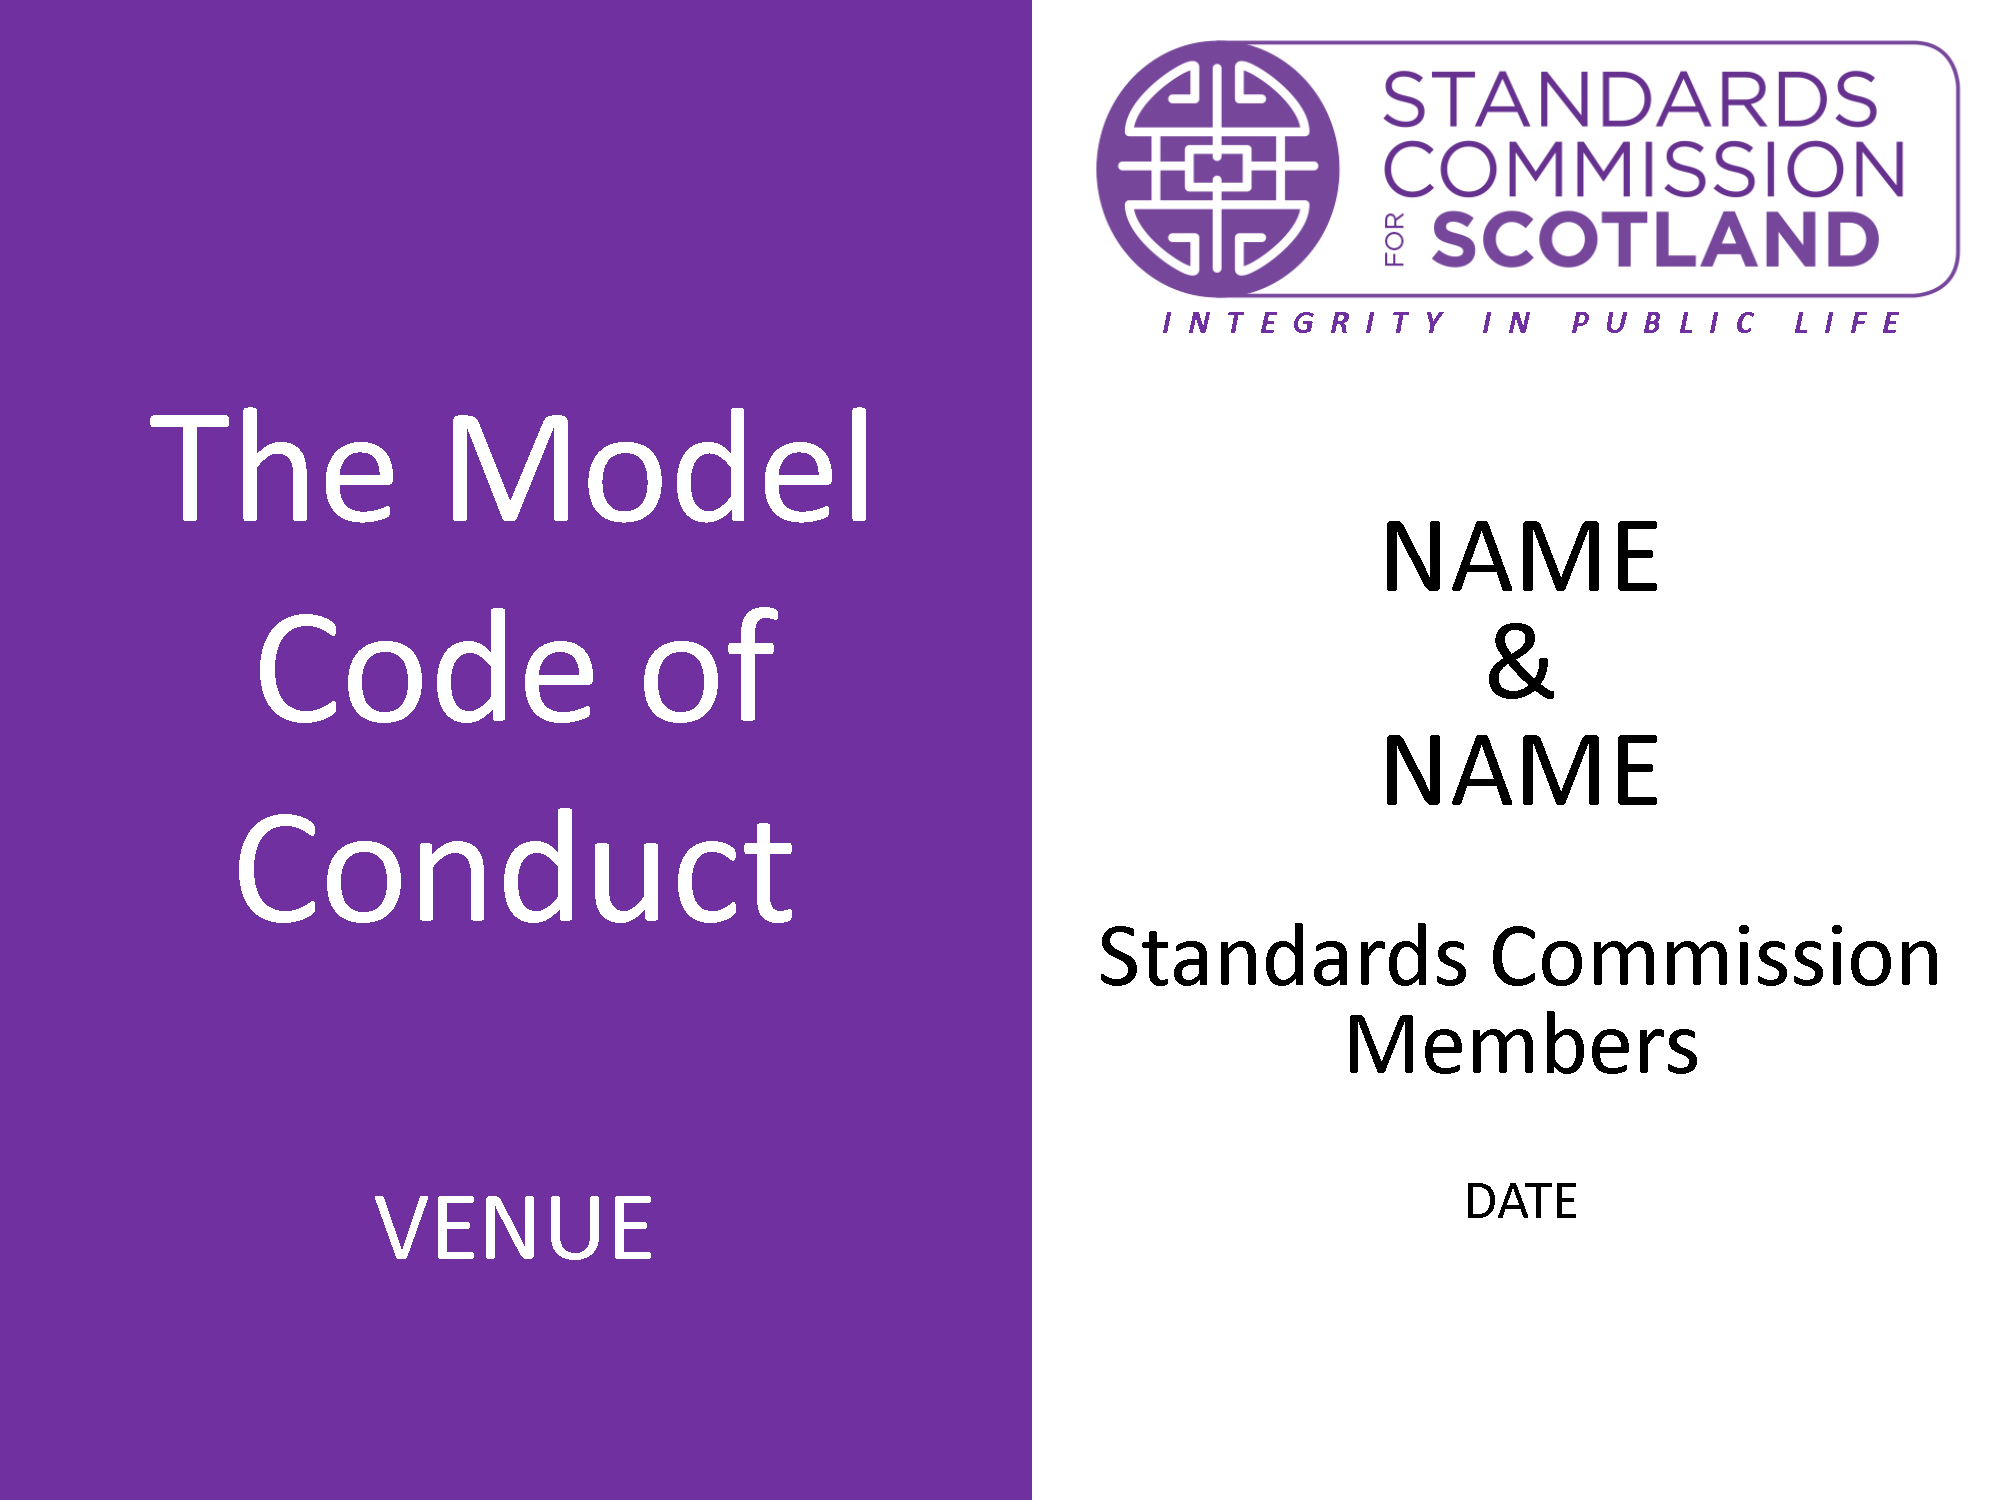 Standard Presentation for Members of Devolved Public Bodies